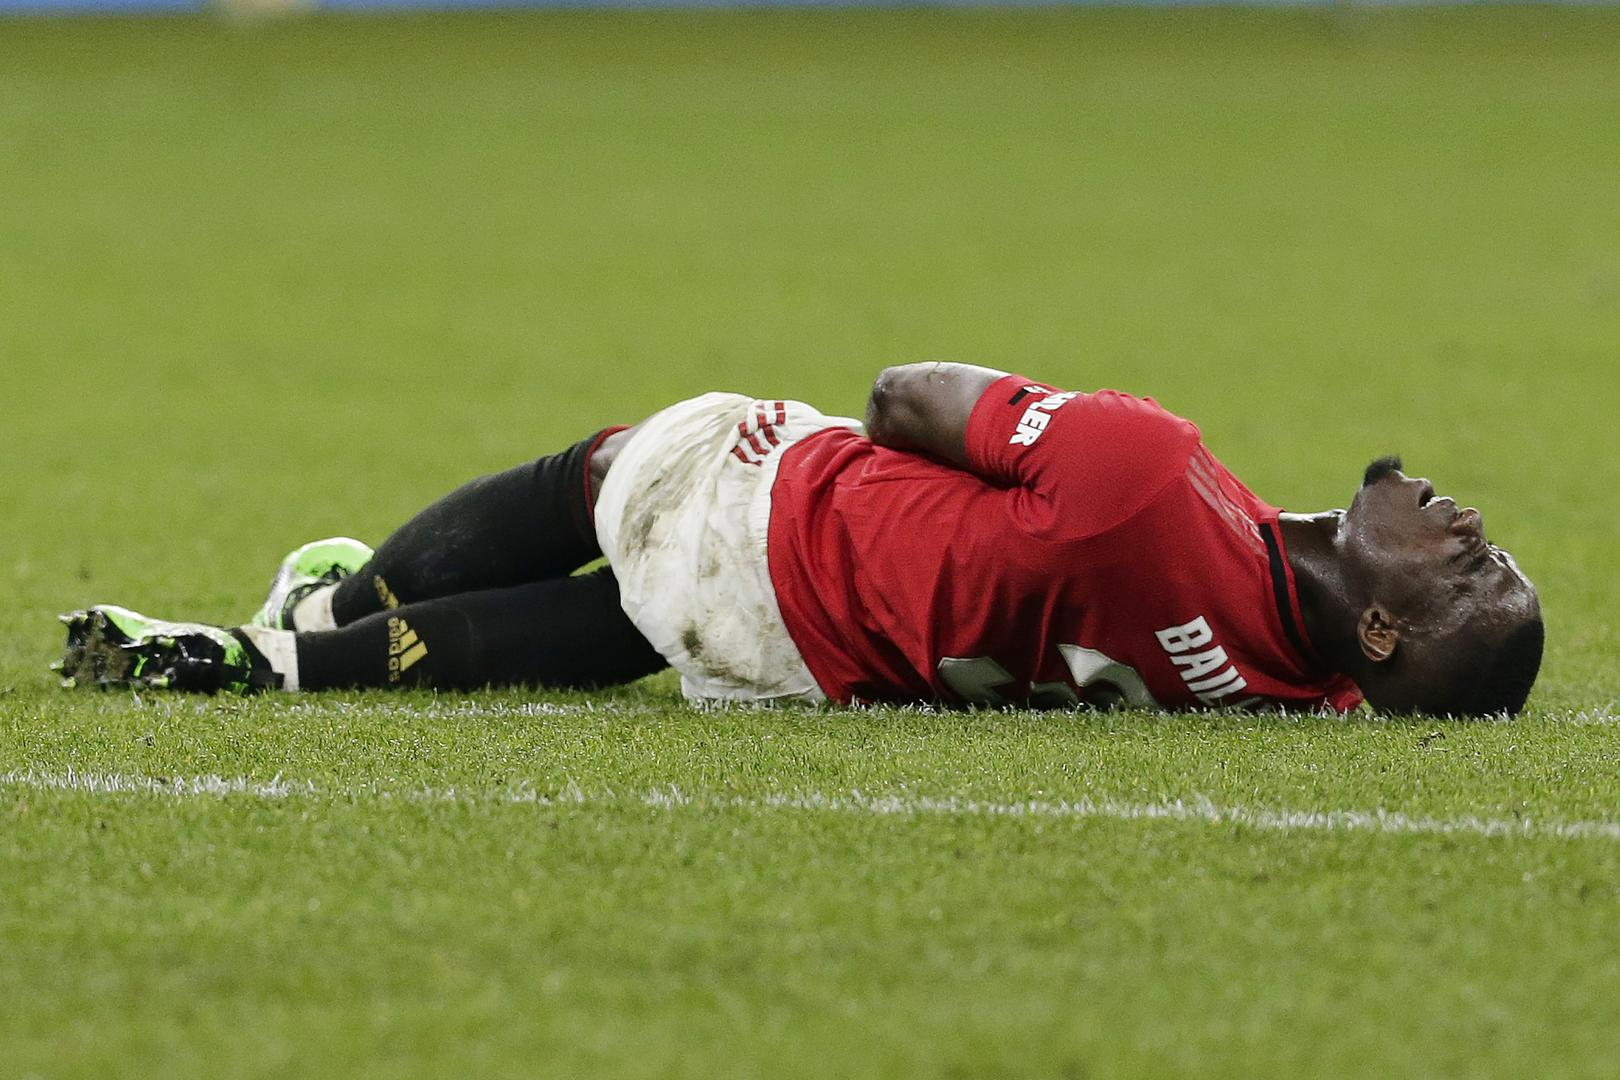 Eric Bailly lying down injured.